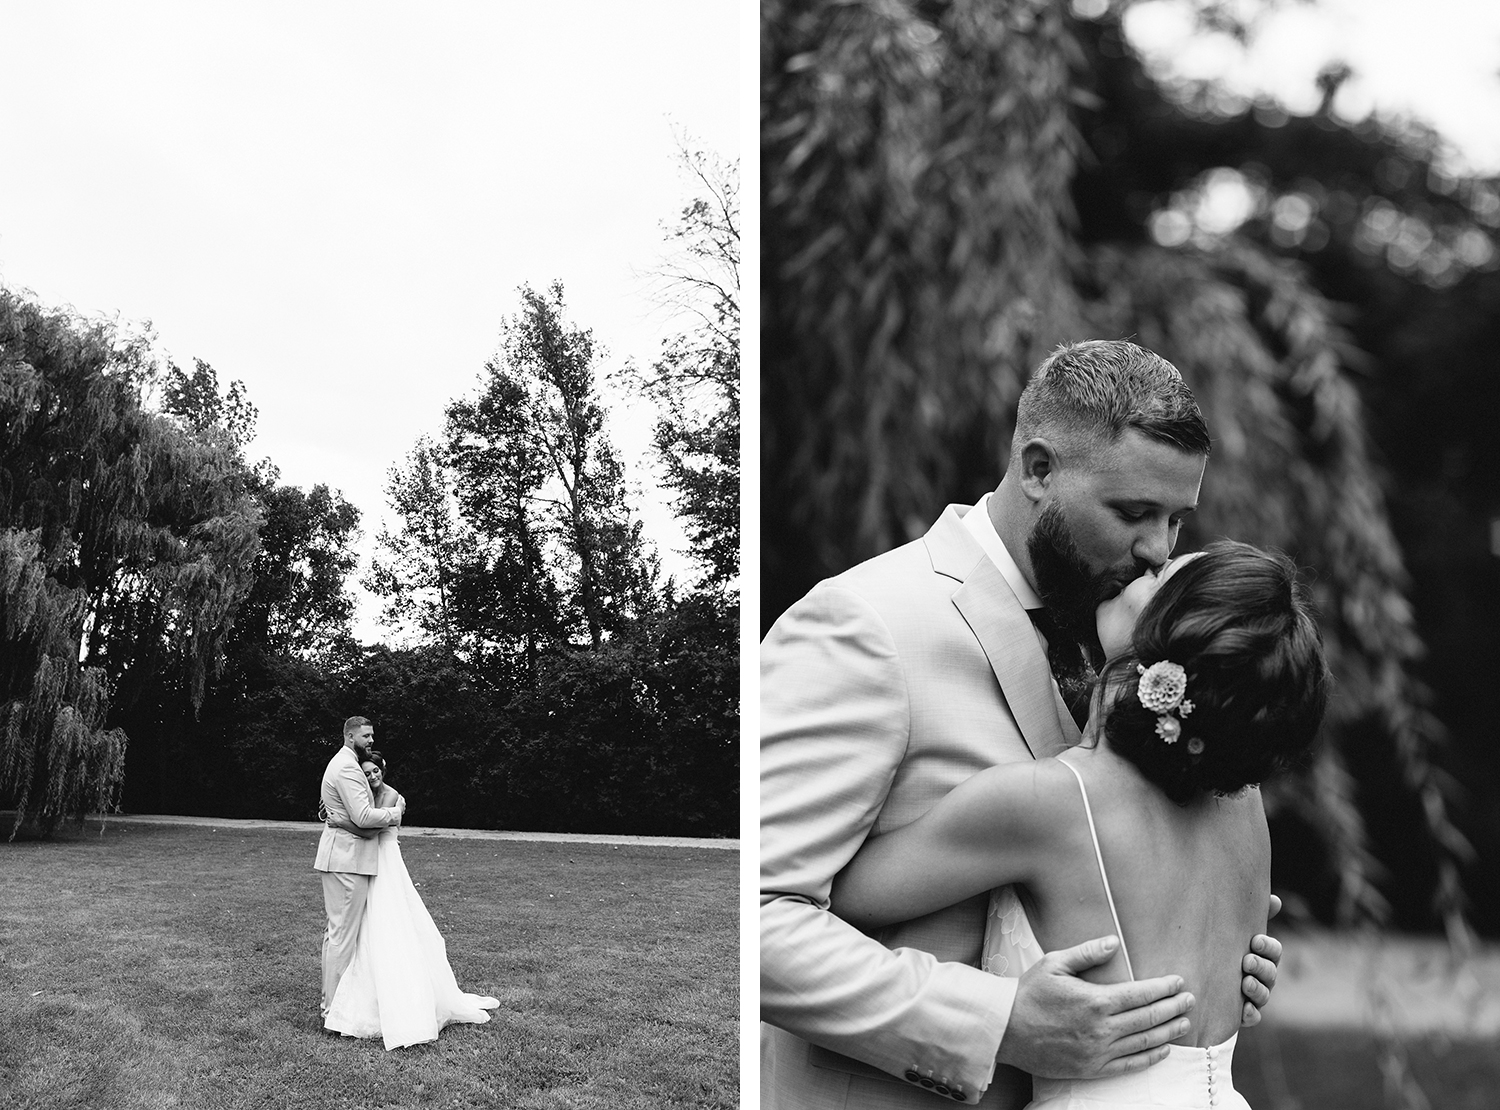 cambium-farms-wedding-toronto-wedding-photographer-ryanne-hollies-photography-gay-wedding-farm-wedding-inspiriration-candid-first-look-suprise-excitement-laughing-bw.jpg